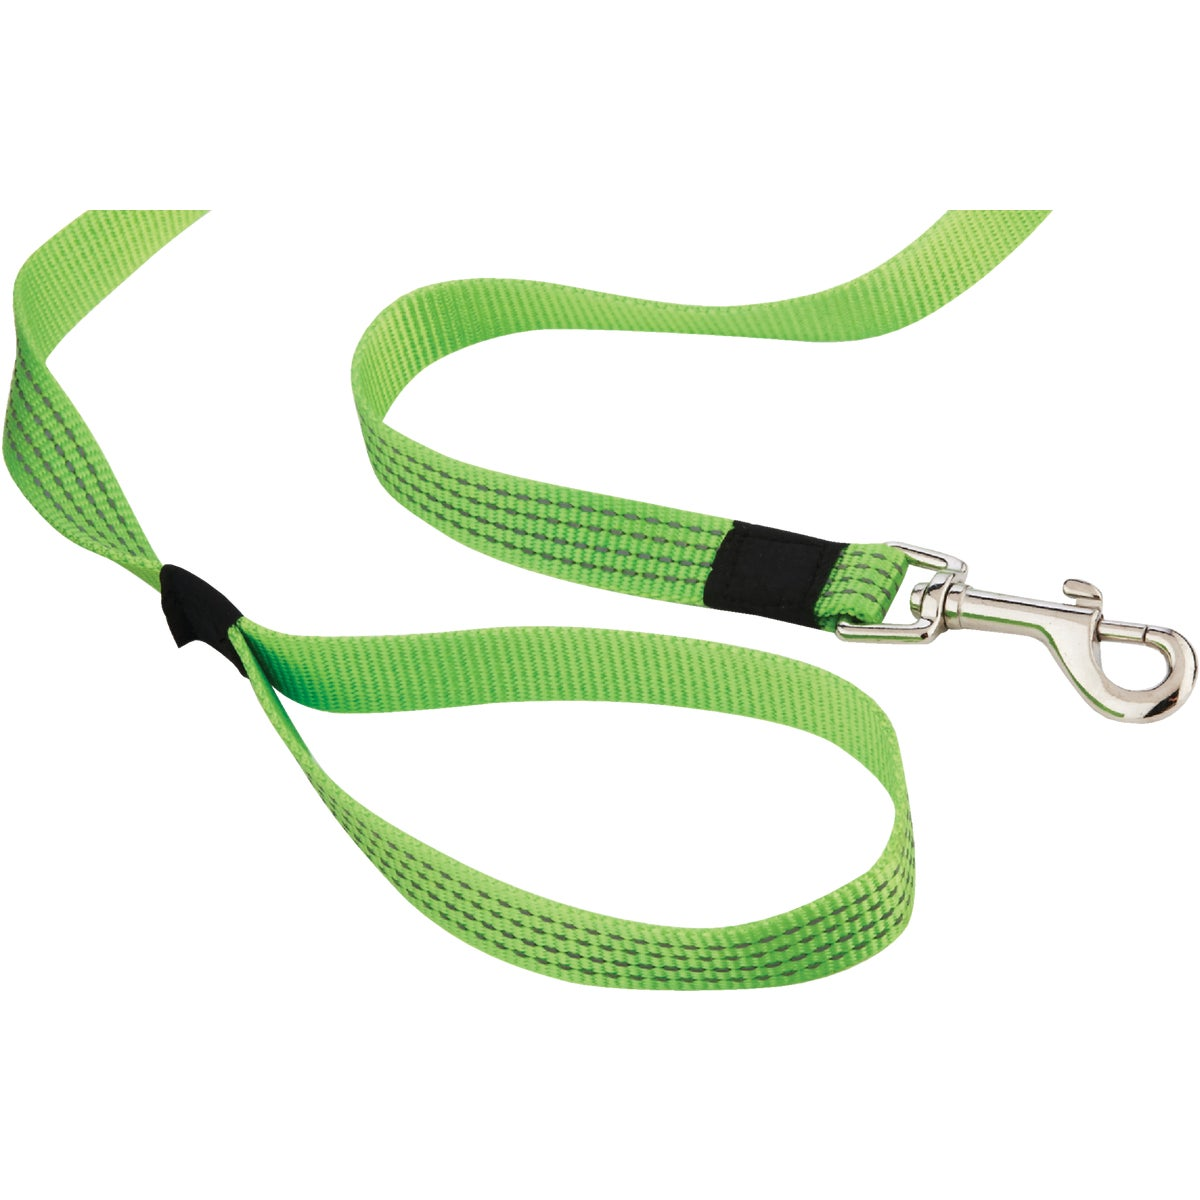 4FT HI-VIS DOG LEASH